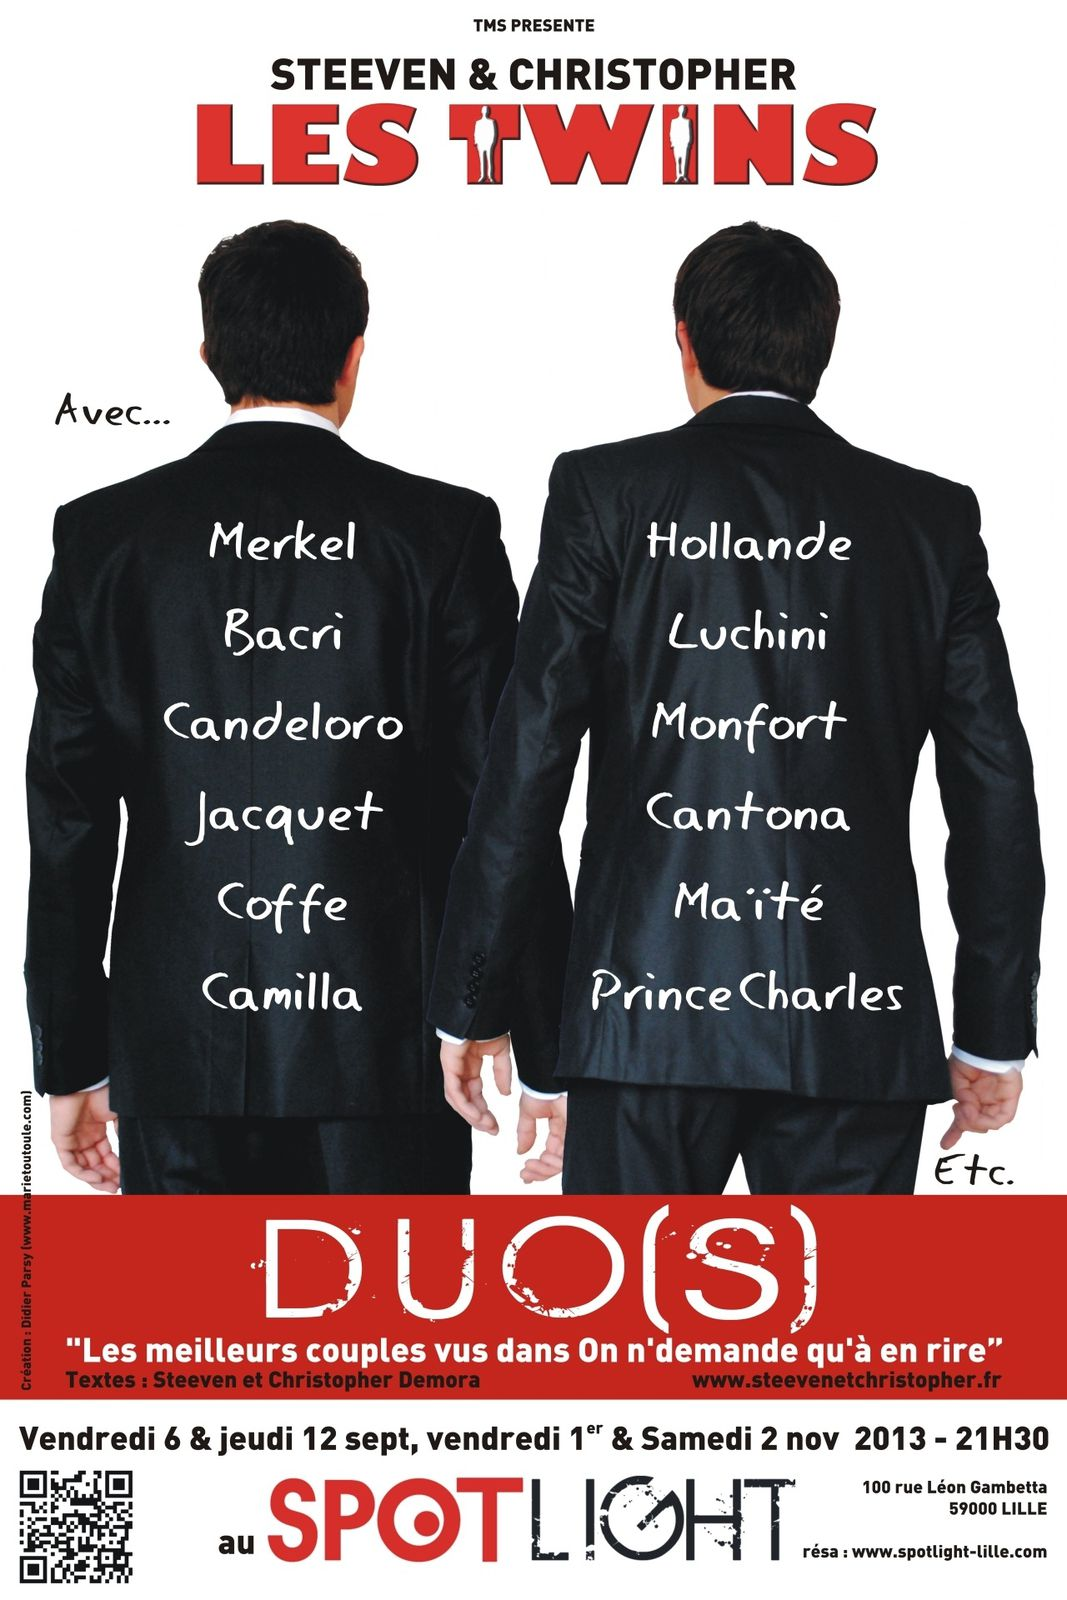 Steeven et Christopher - DUO(S)